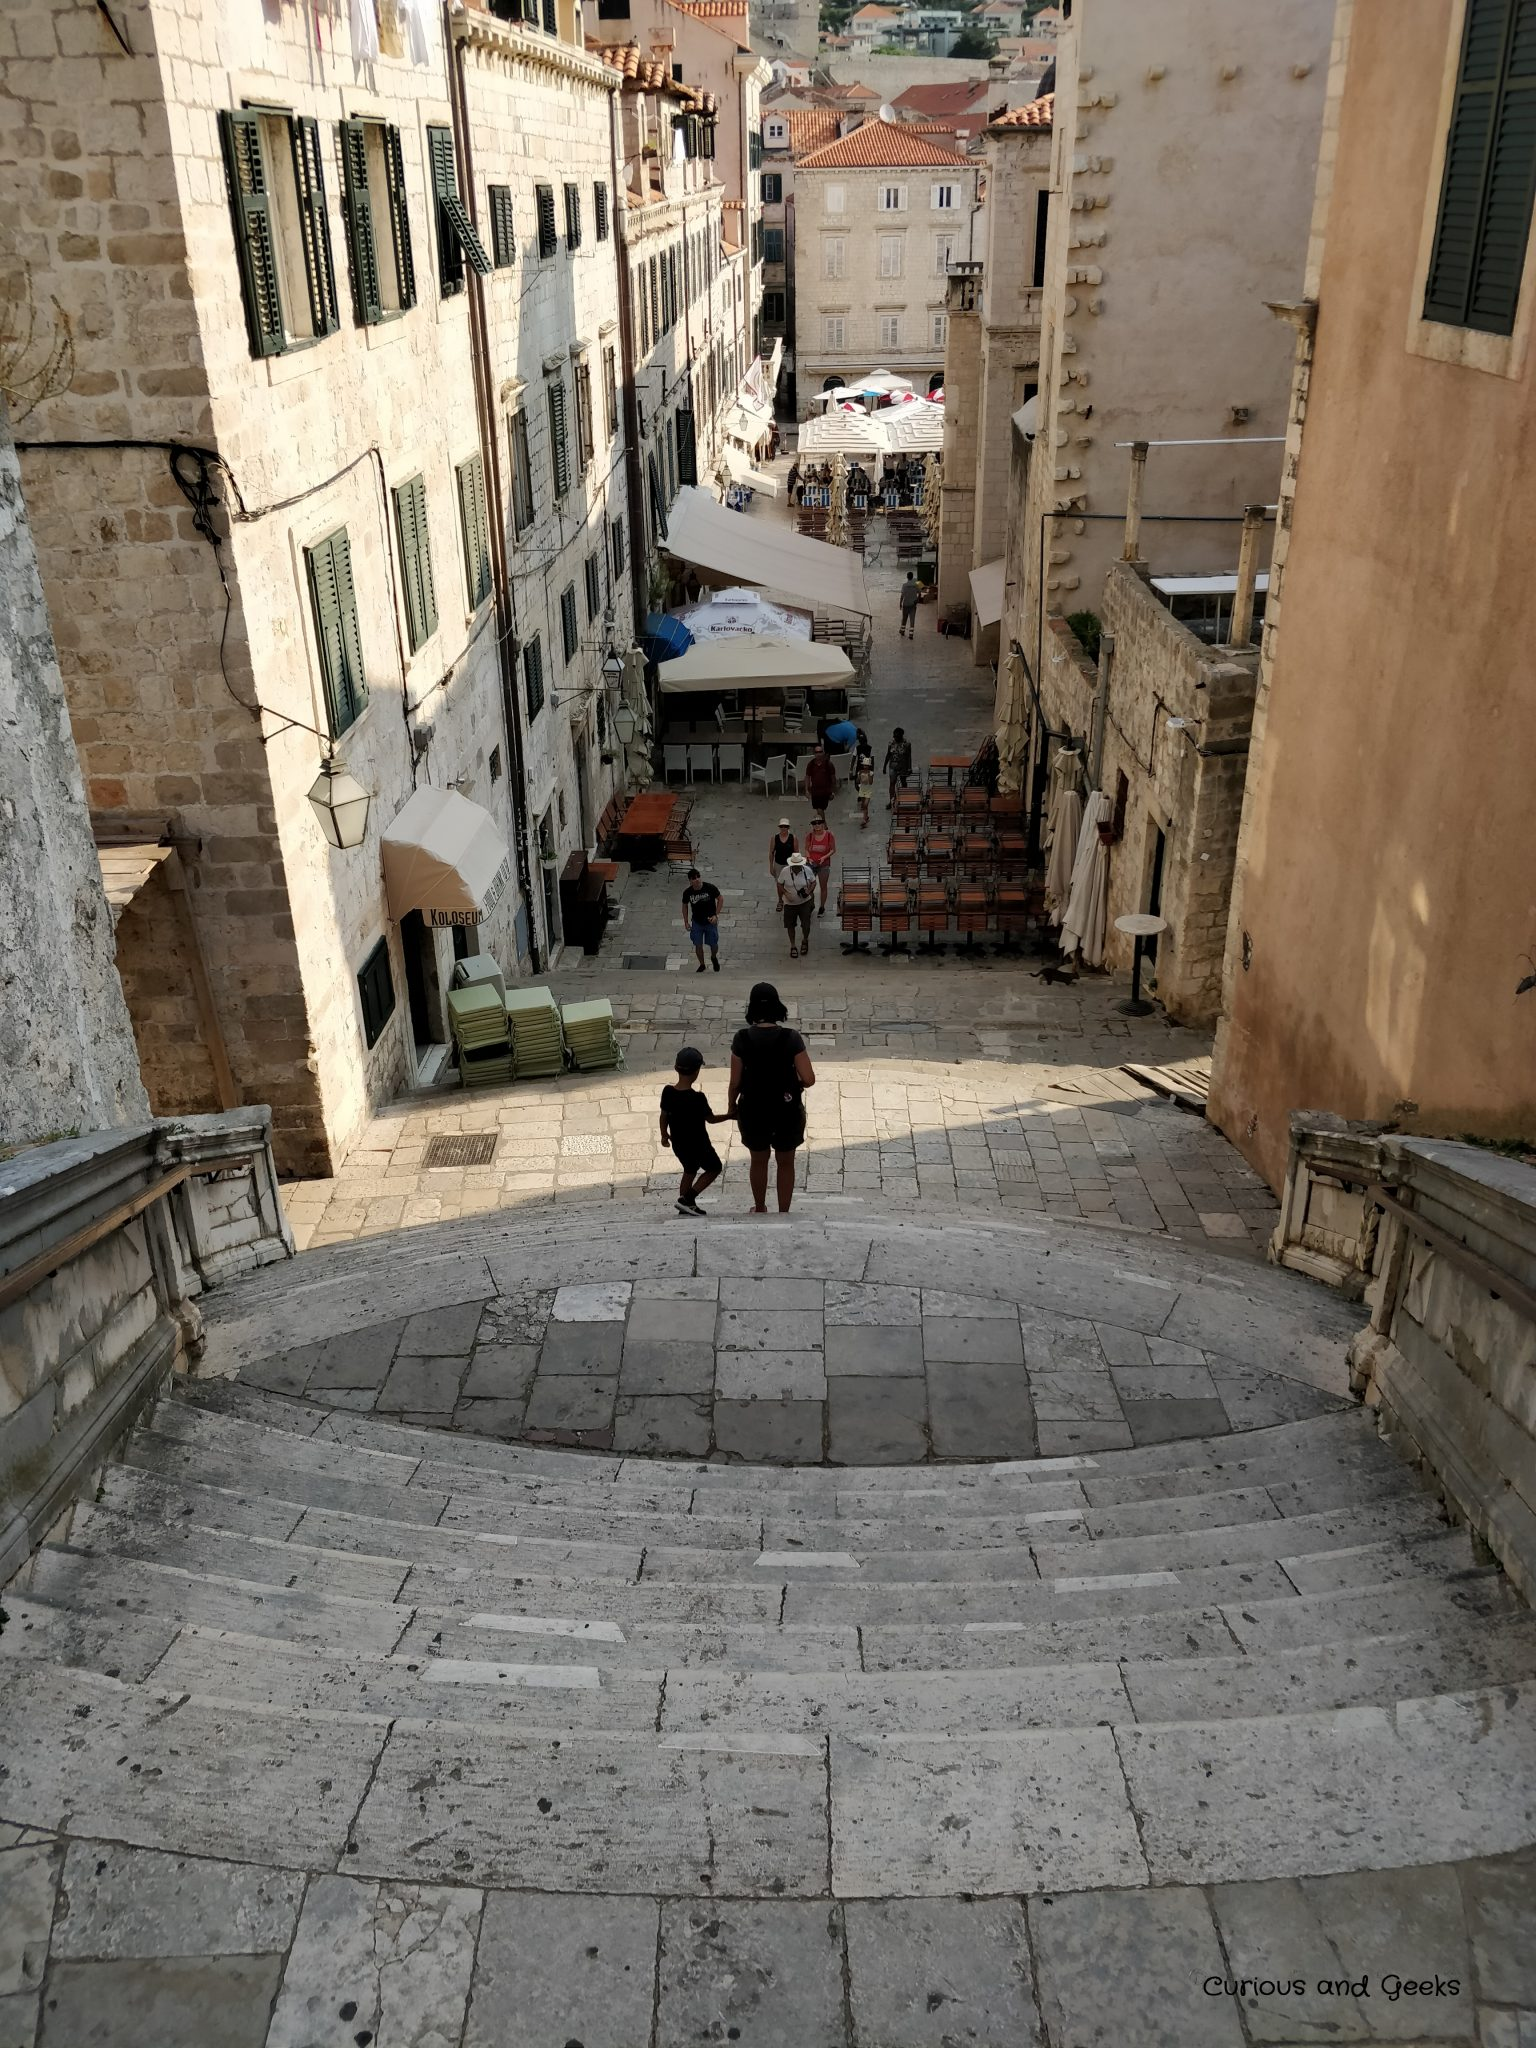 3. The Jesuit Staircase - Game of Thrones filming locations in Dubrovnik